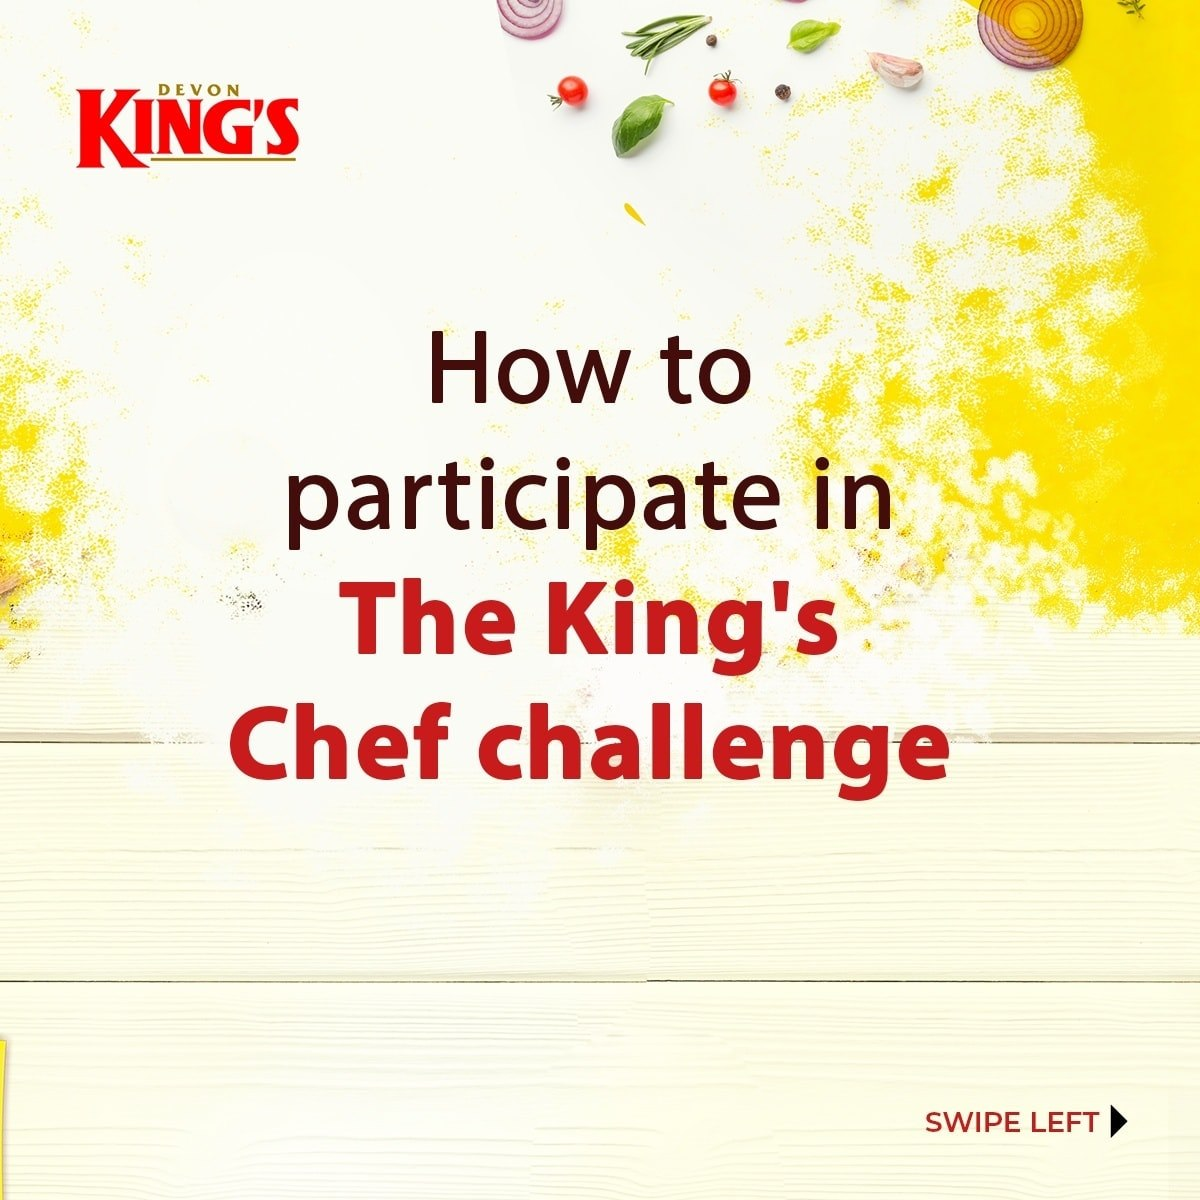 Visual Closure of How To Participate in The Kings Chef Challenge By Devon Kings Challenge